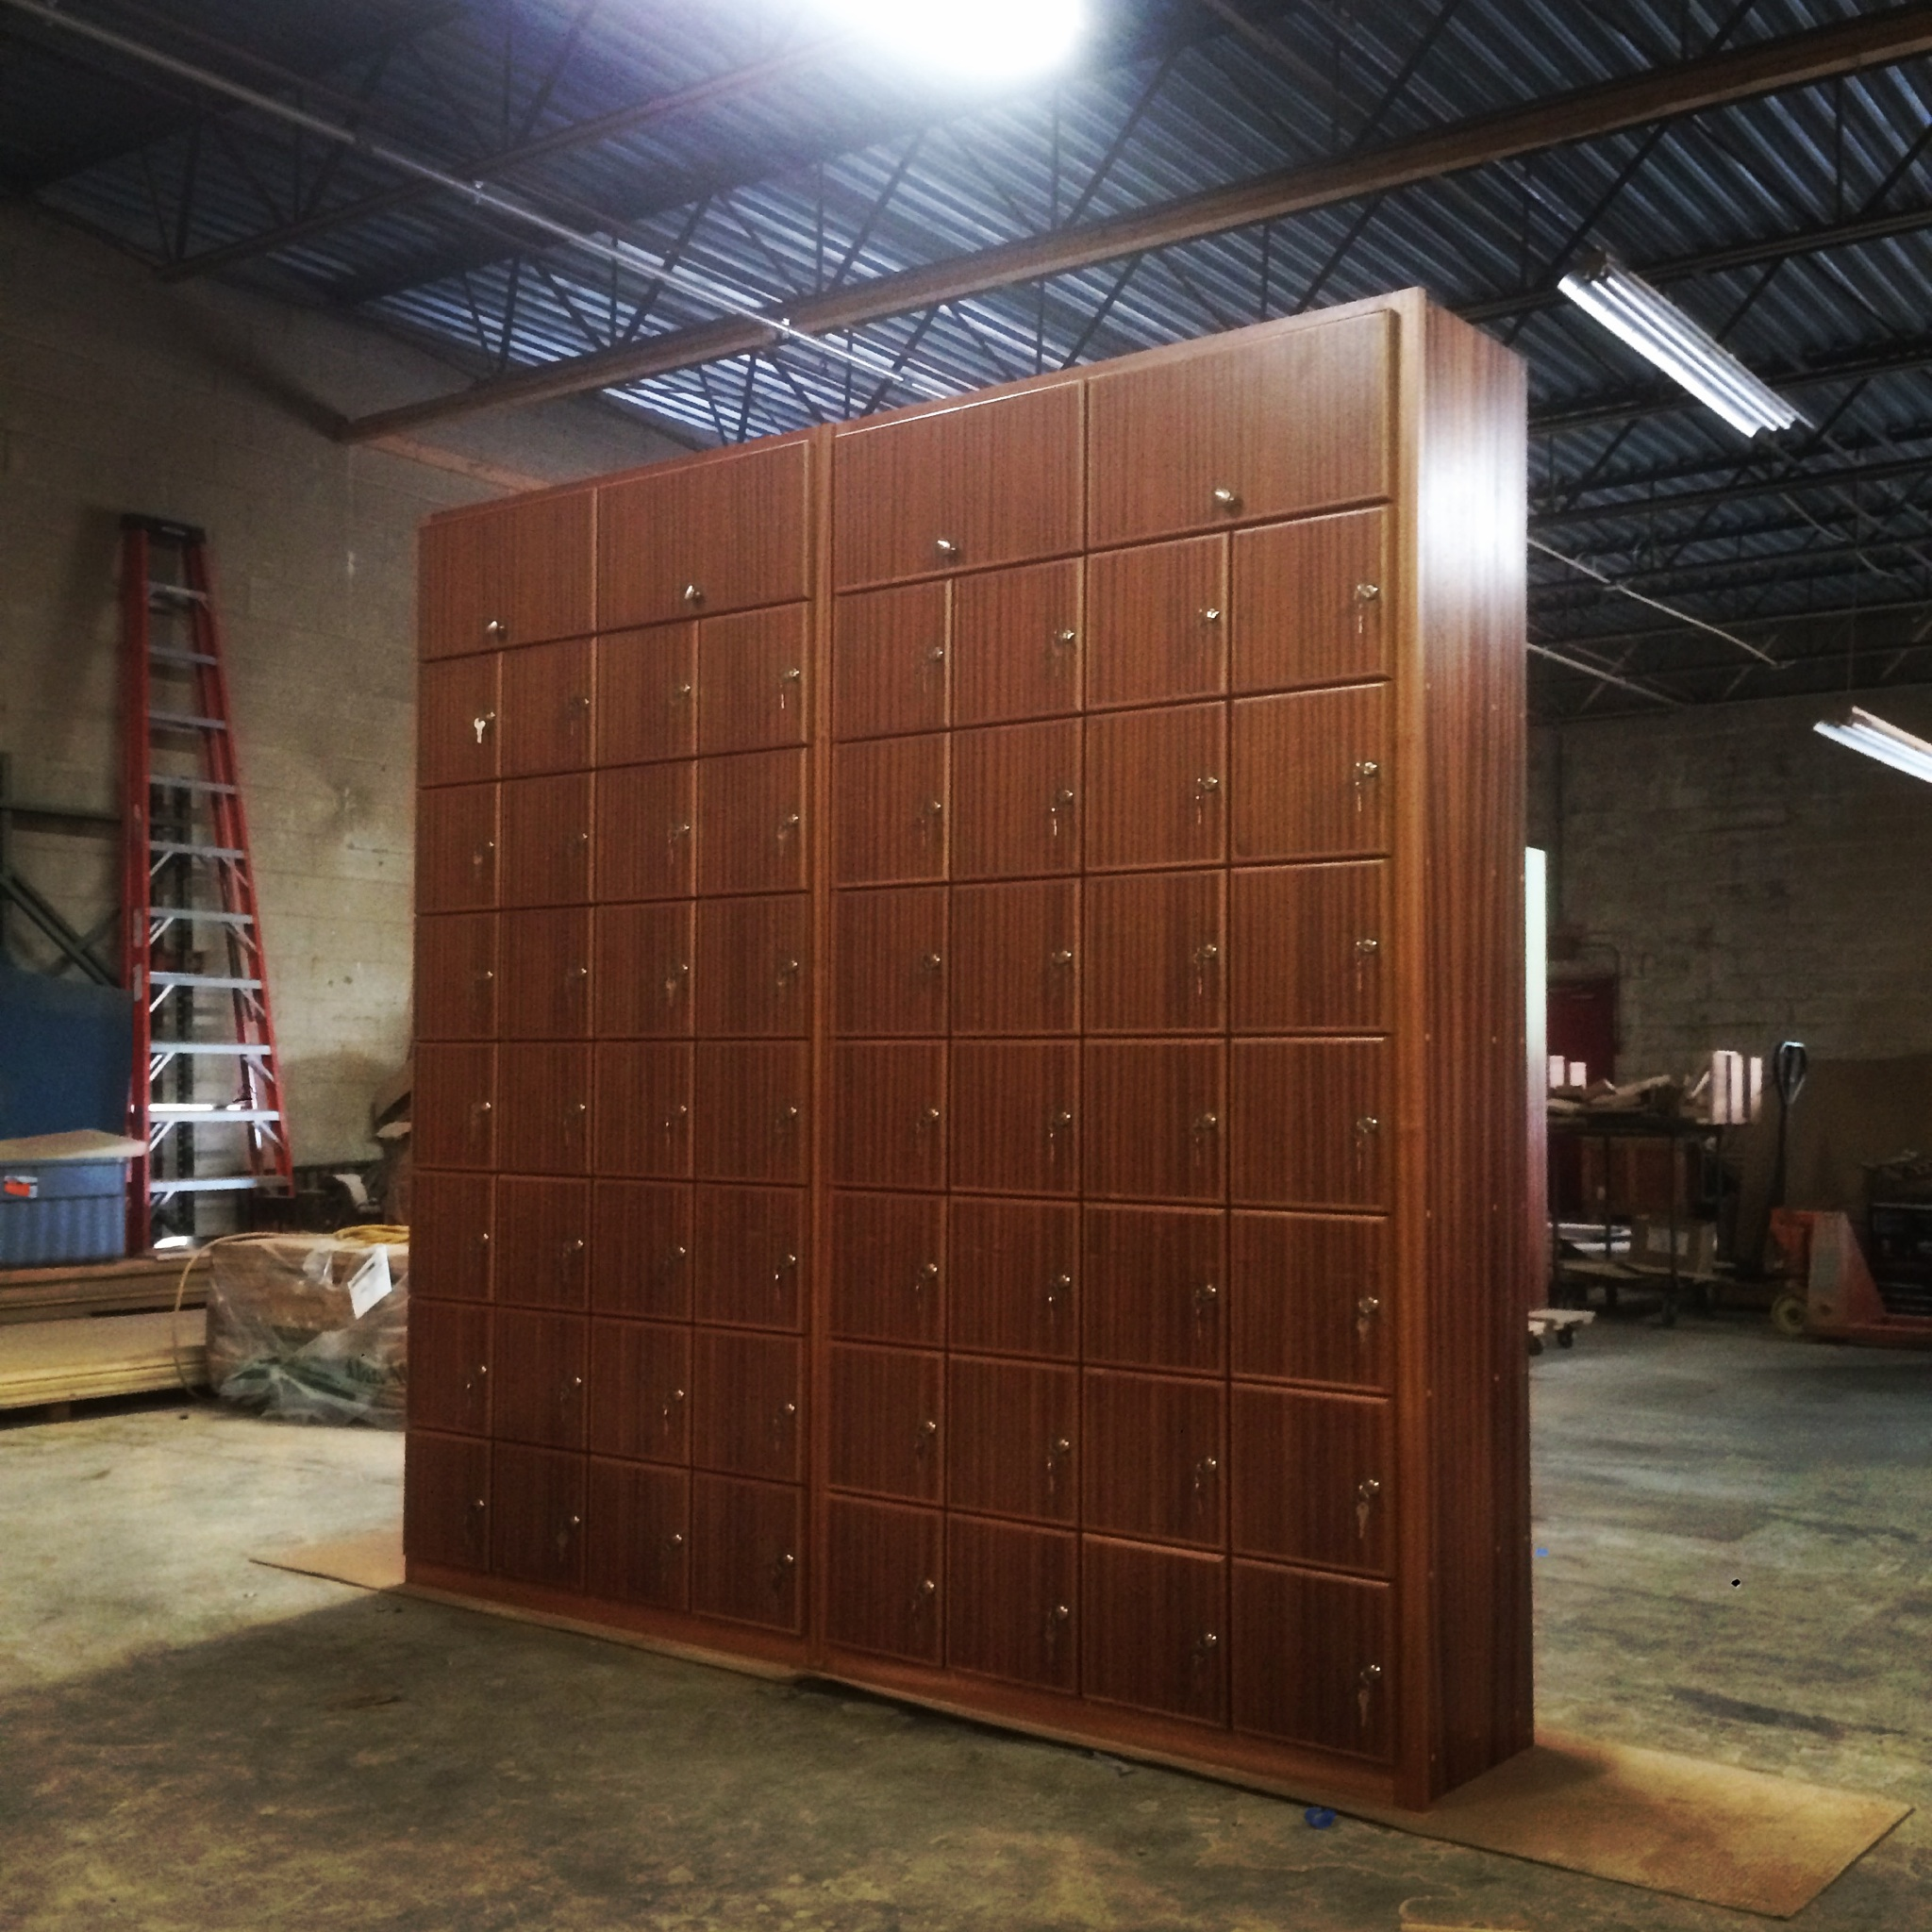 Mahogany Qty 56 Locker Module